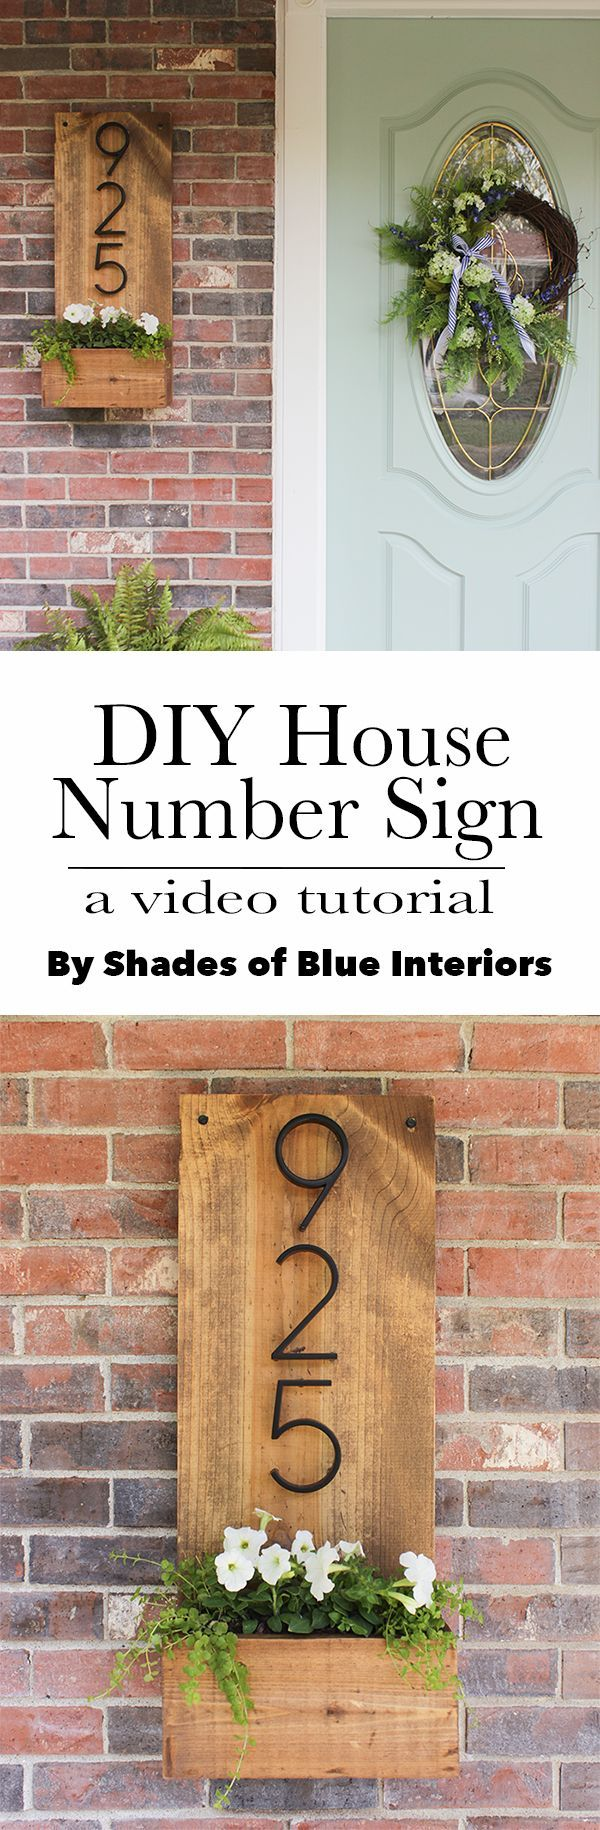 DIY House Number Sign Woodworking projects that sell